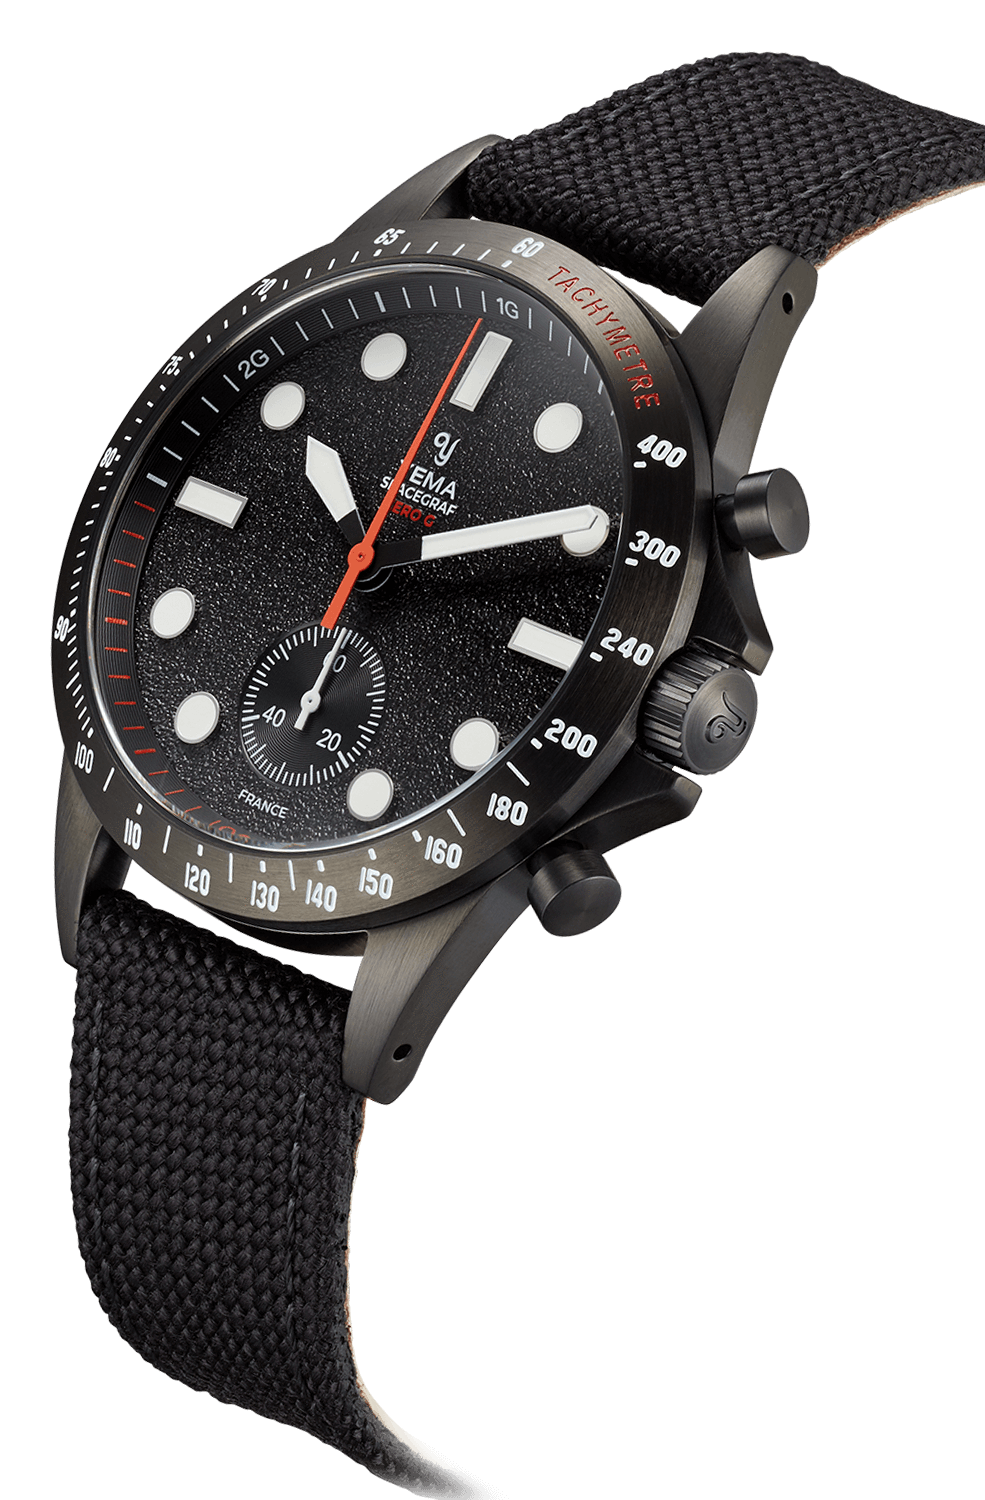 YEMA Spacegraf ZERO-G watch, PVD coated Steel bezel, Tachymeter scale engraved.